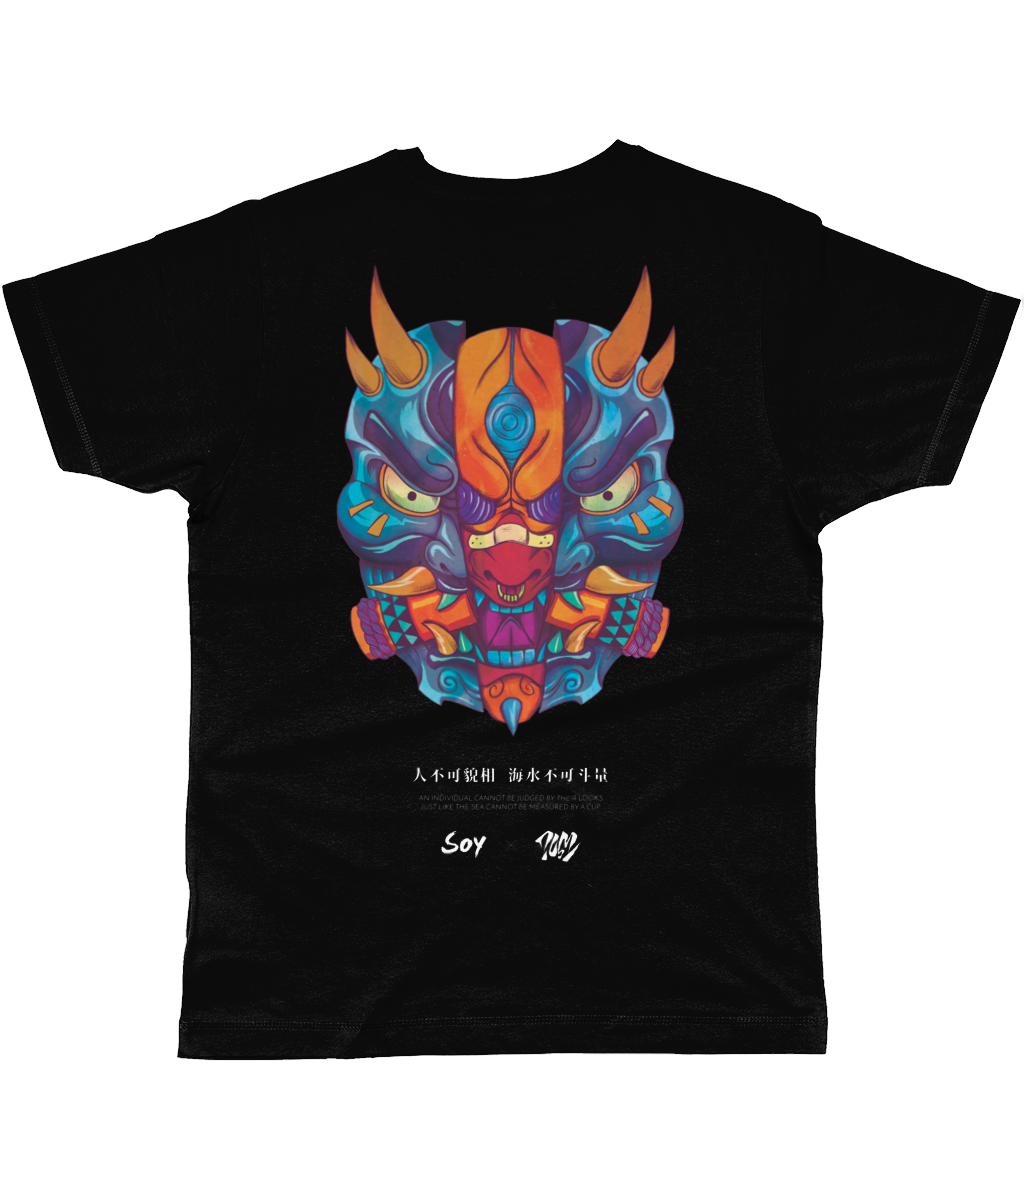 SOY X DOM TSOI Demon Mask Tee Blue/Orange